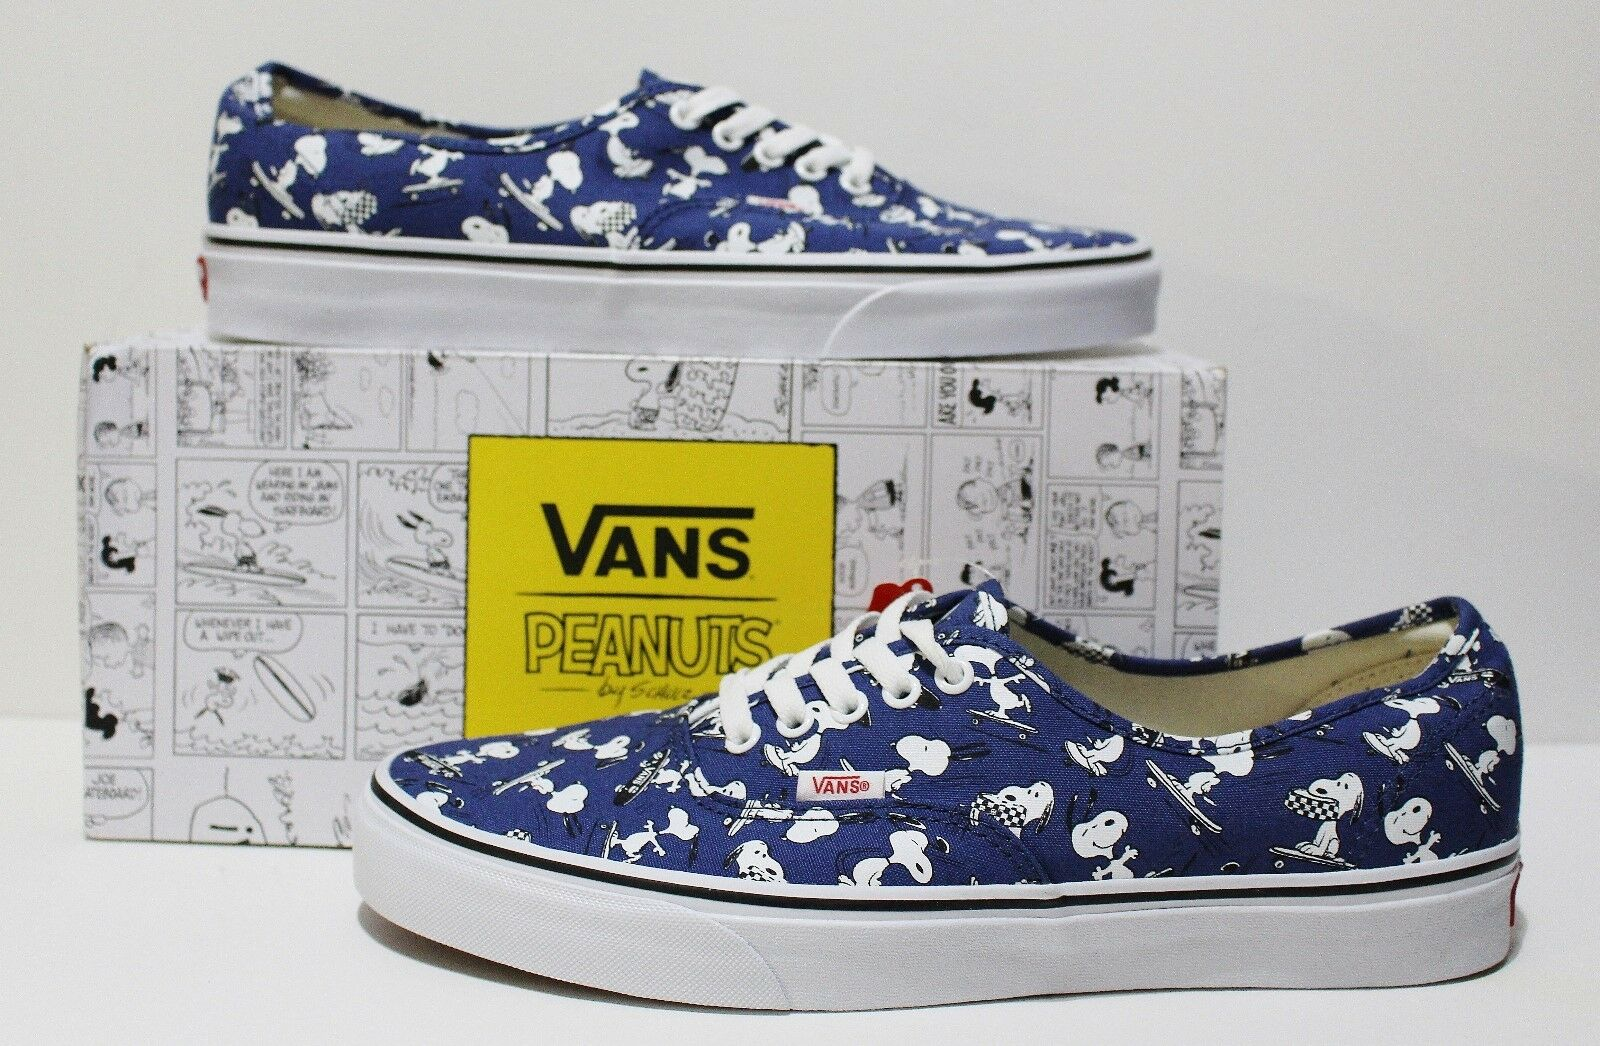 Vans Snoopy X Peanuts Authentic Snoopy Vans Skating Men's Size 9 5b5908